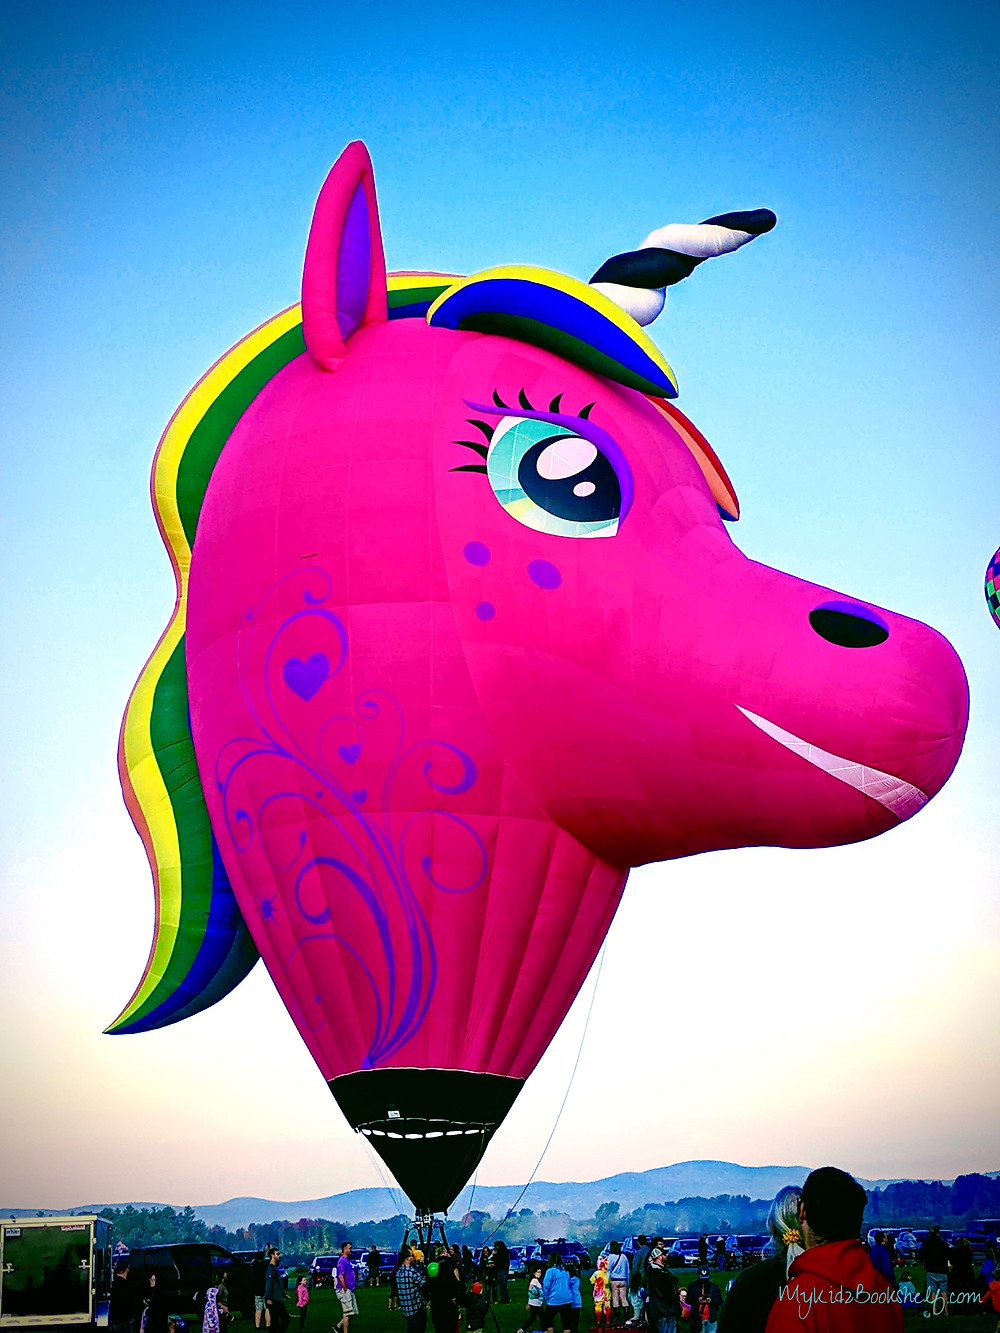 Adirondack-hot-air-balloon-festival-unicorn-A-fun-start-to-fall-at-the-Adirondack-hot-air-balloon-festival